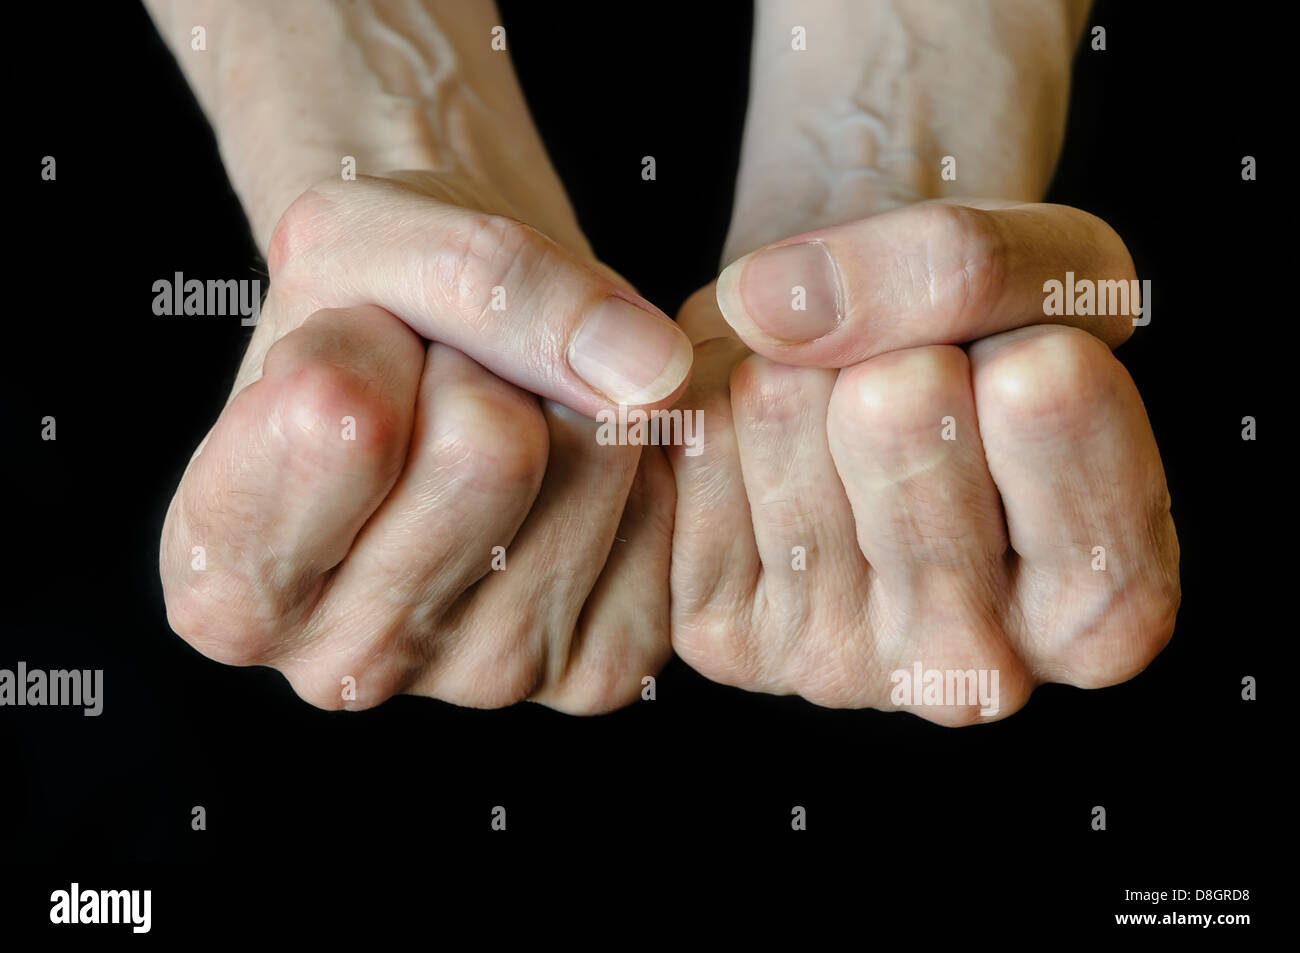 Senior woman showing fists on black background - Stock Image